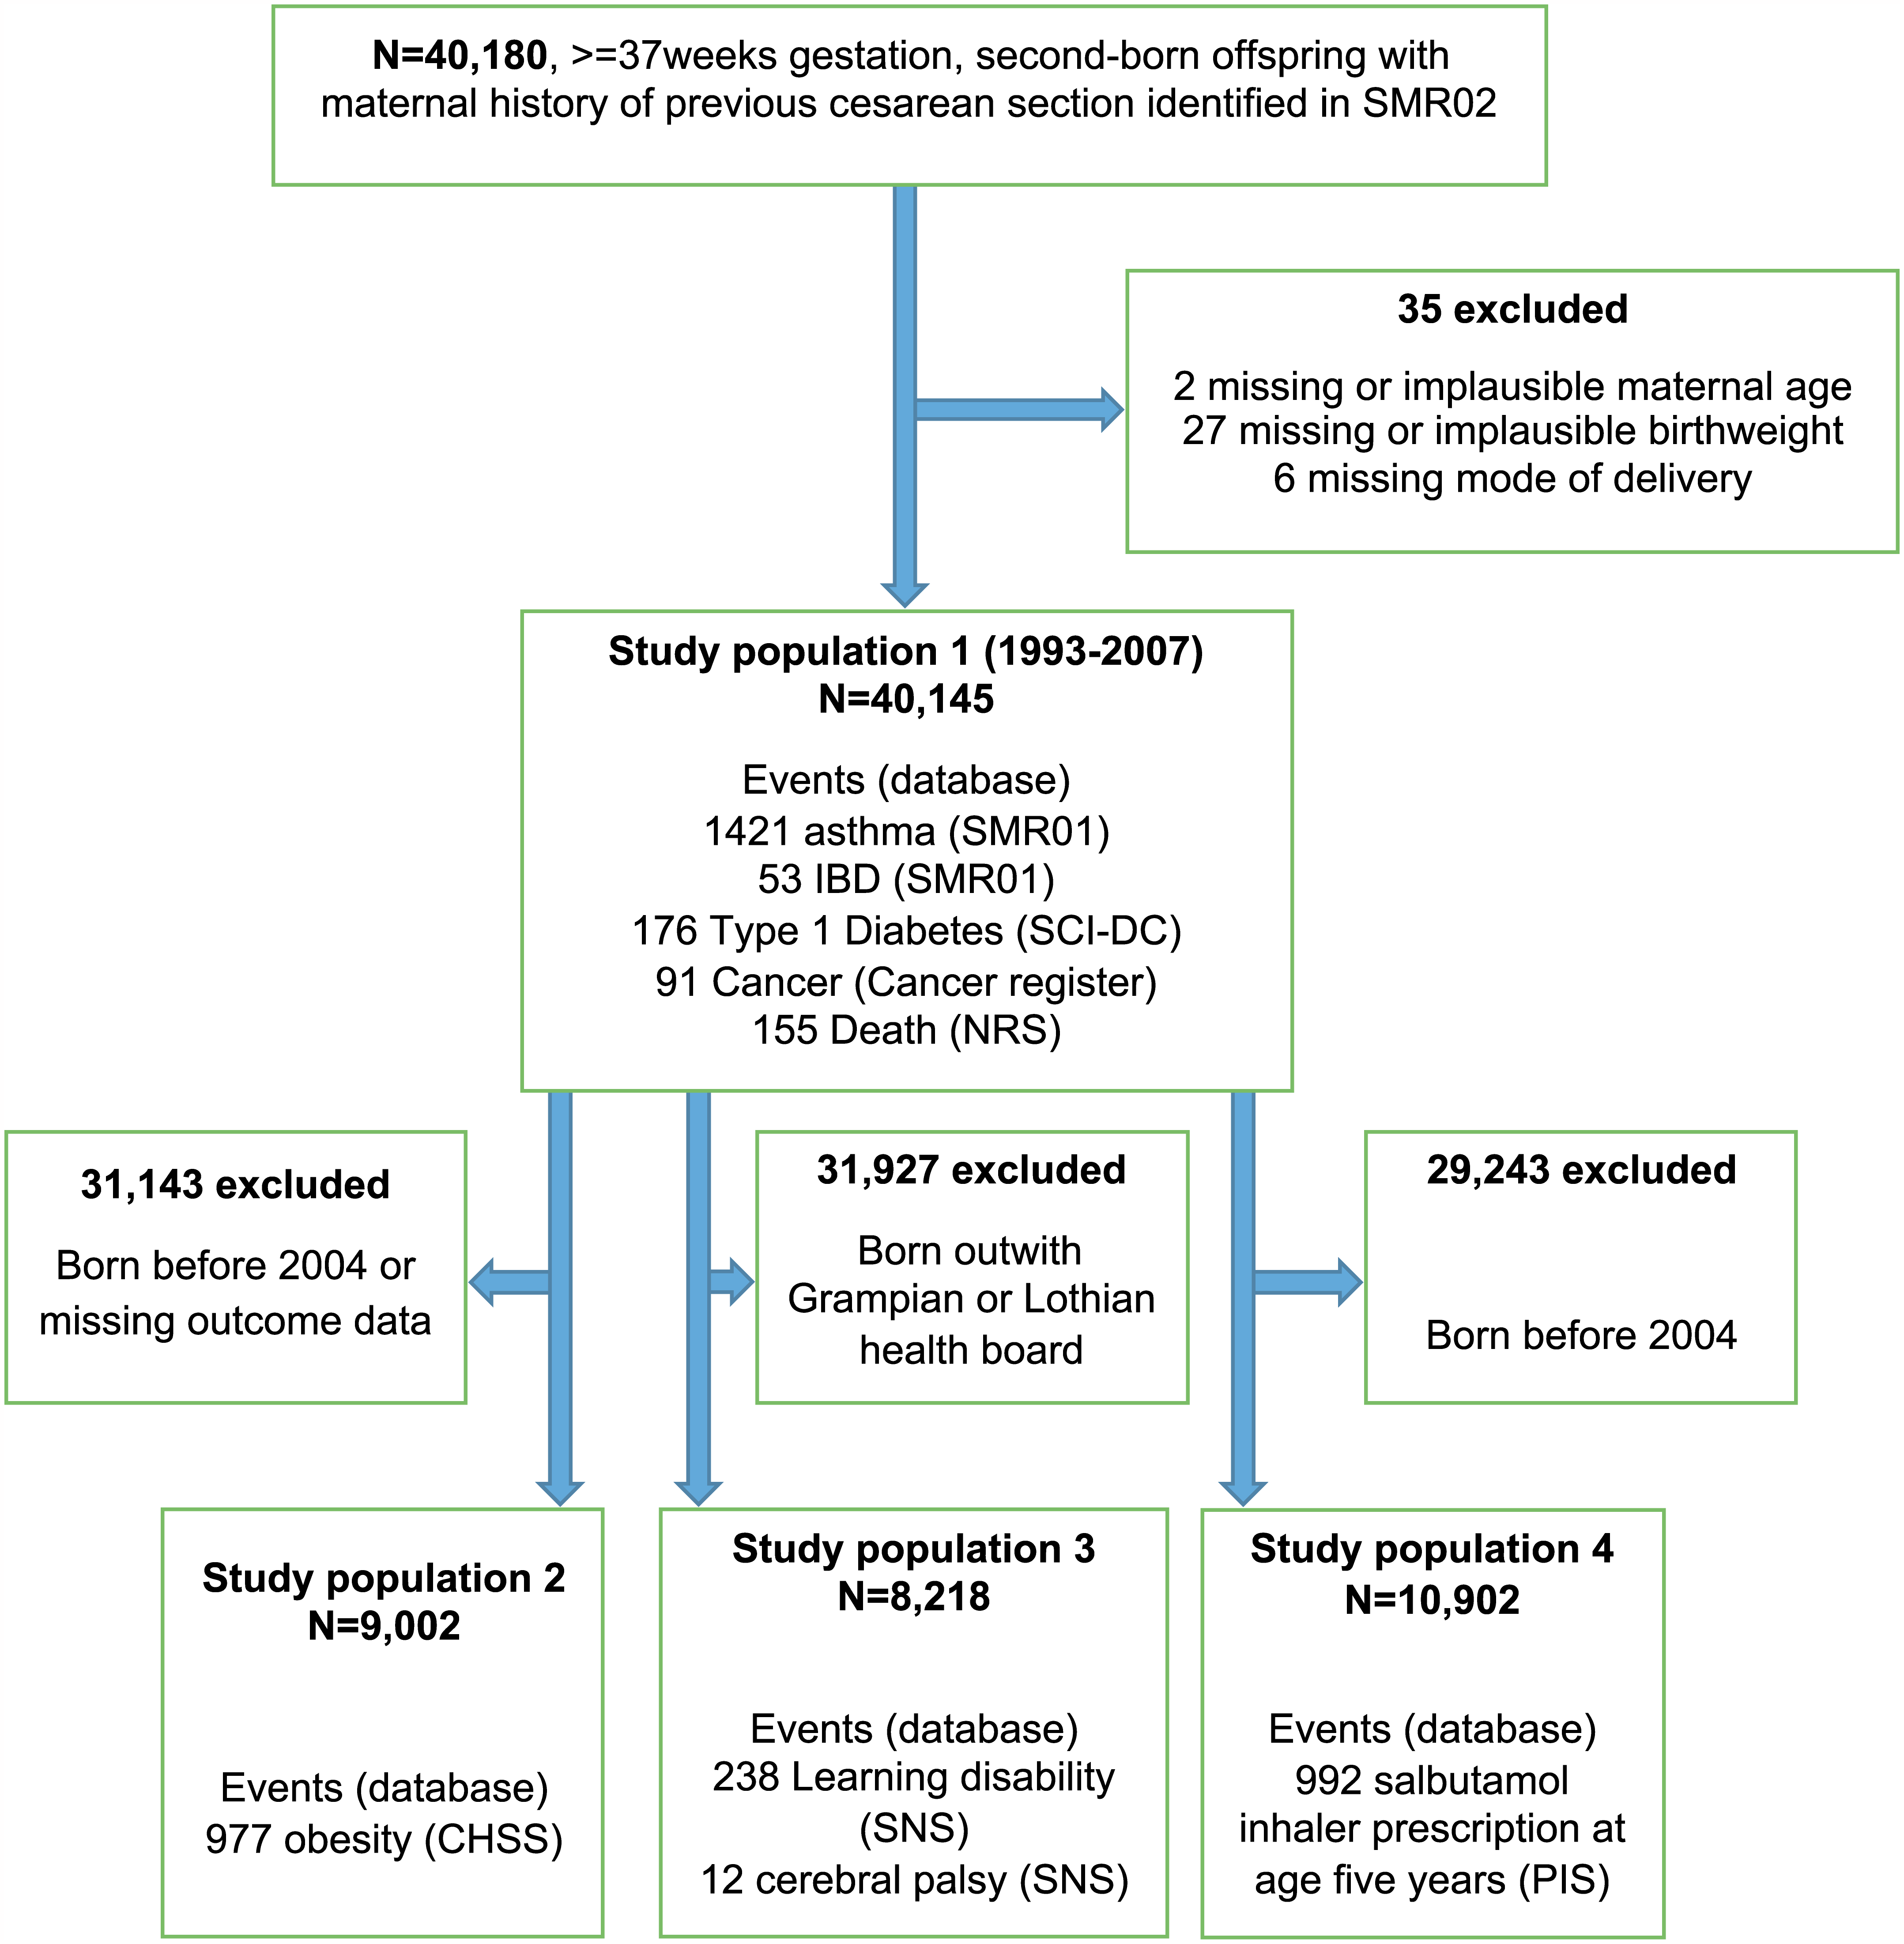 Cohort selection process, linked databases, total populations, and event counts.